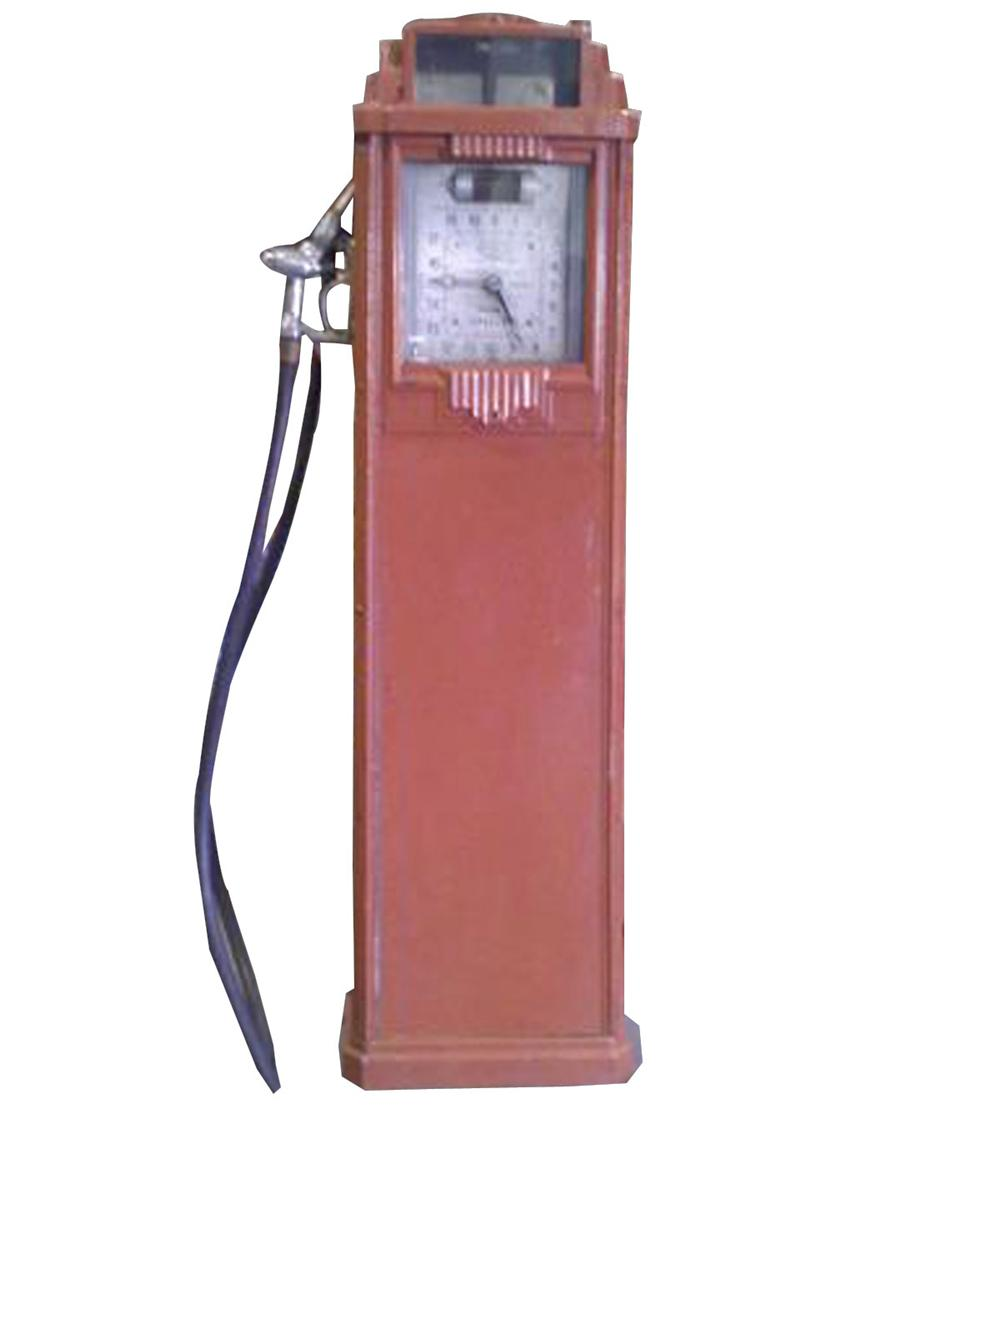 Rare unrestored 1936 Bennett 77 clock face service station gas pump with art deco influence. - Front 3/4 - 82484